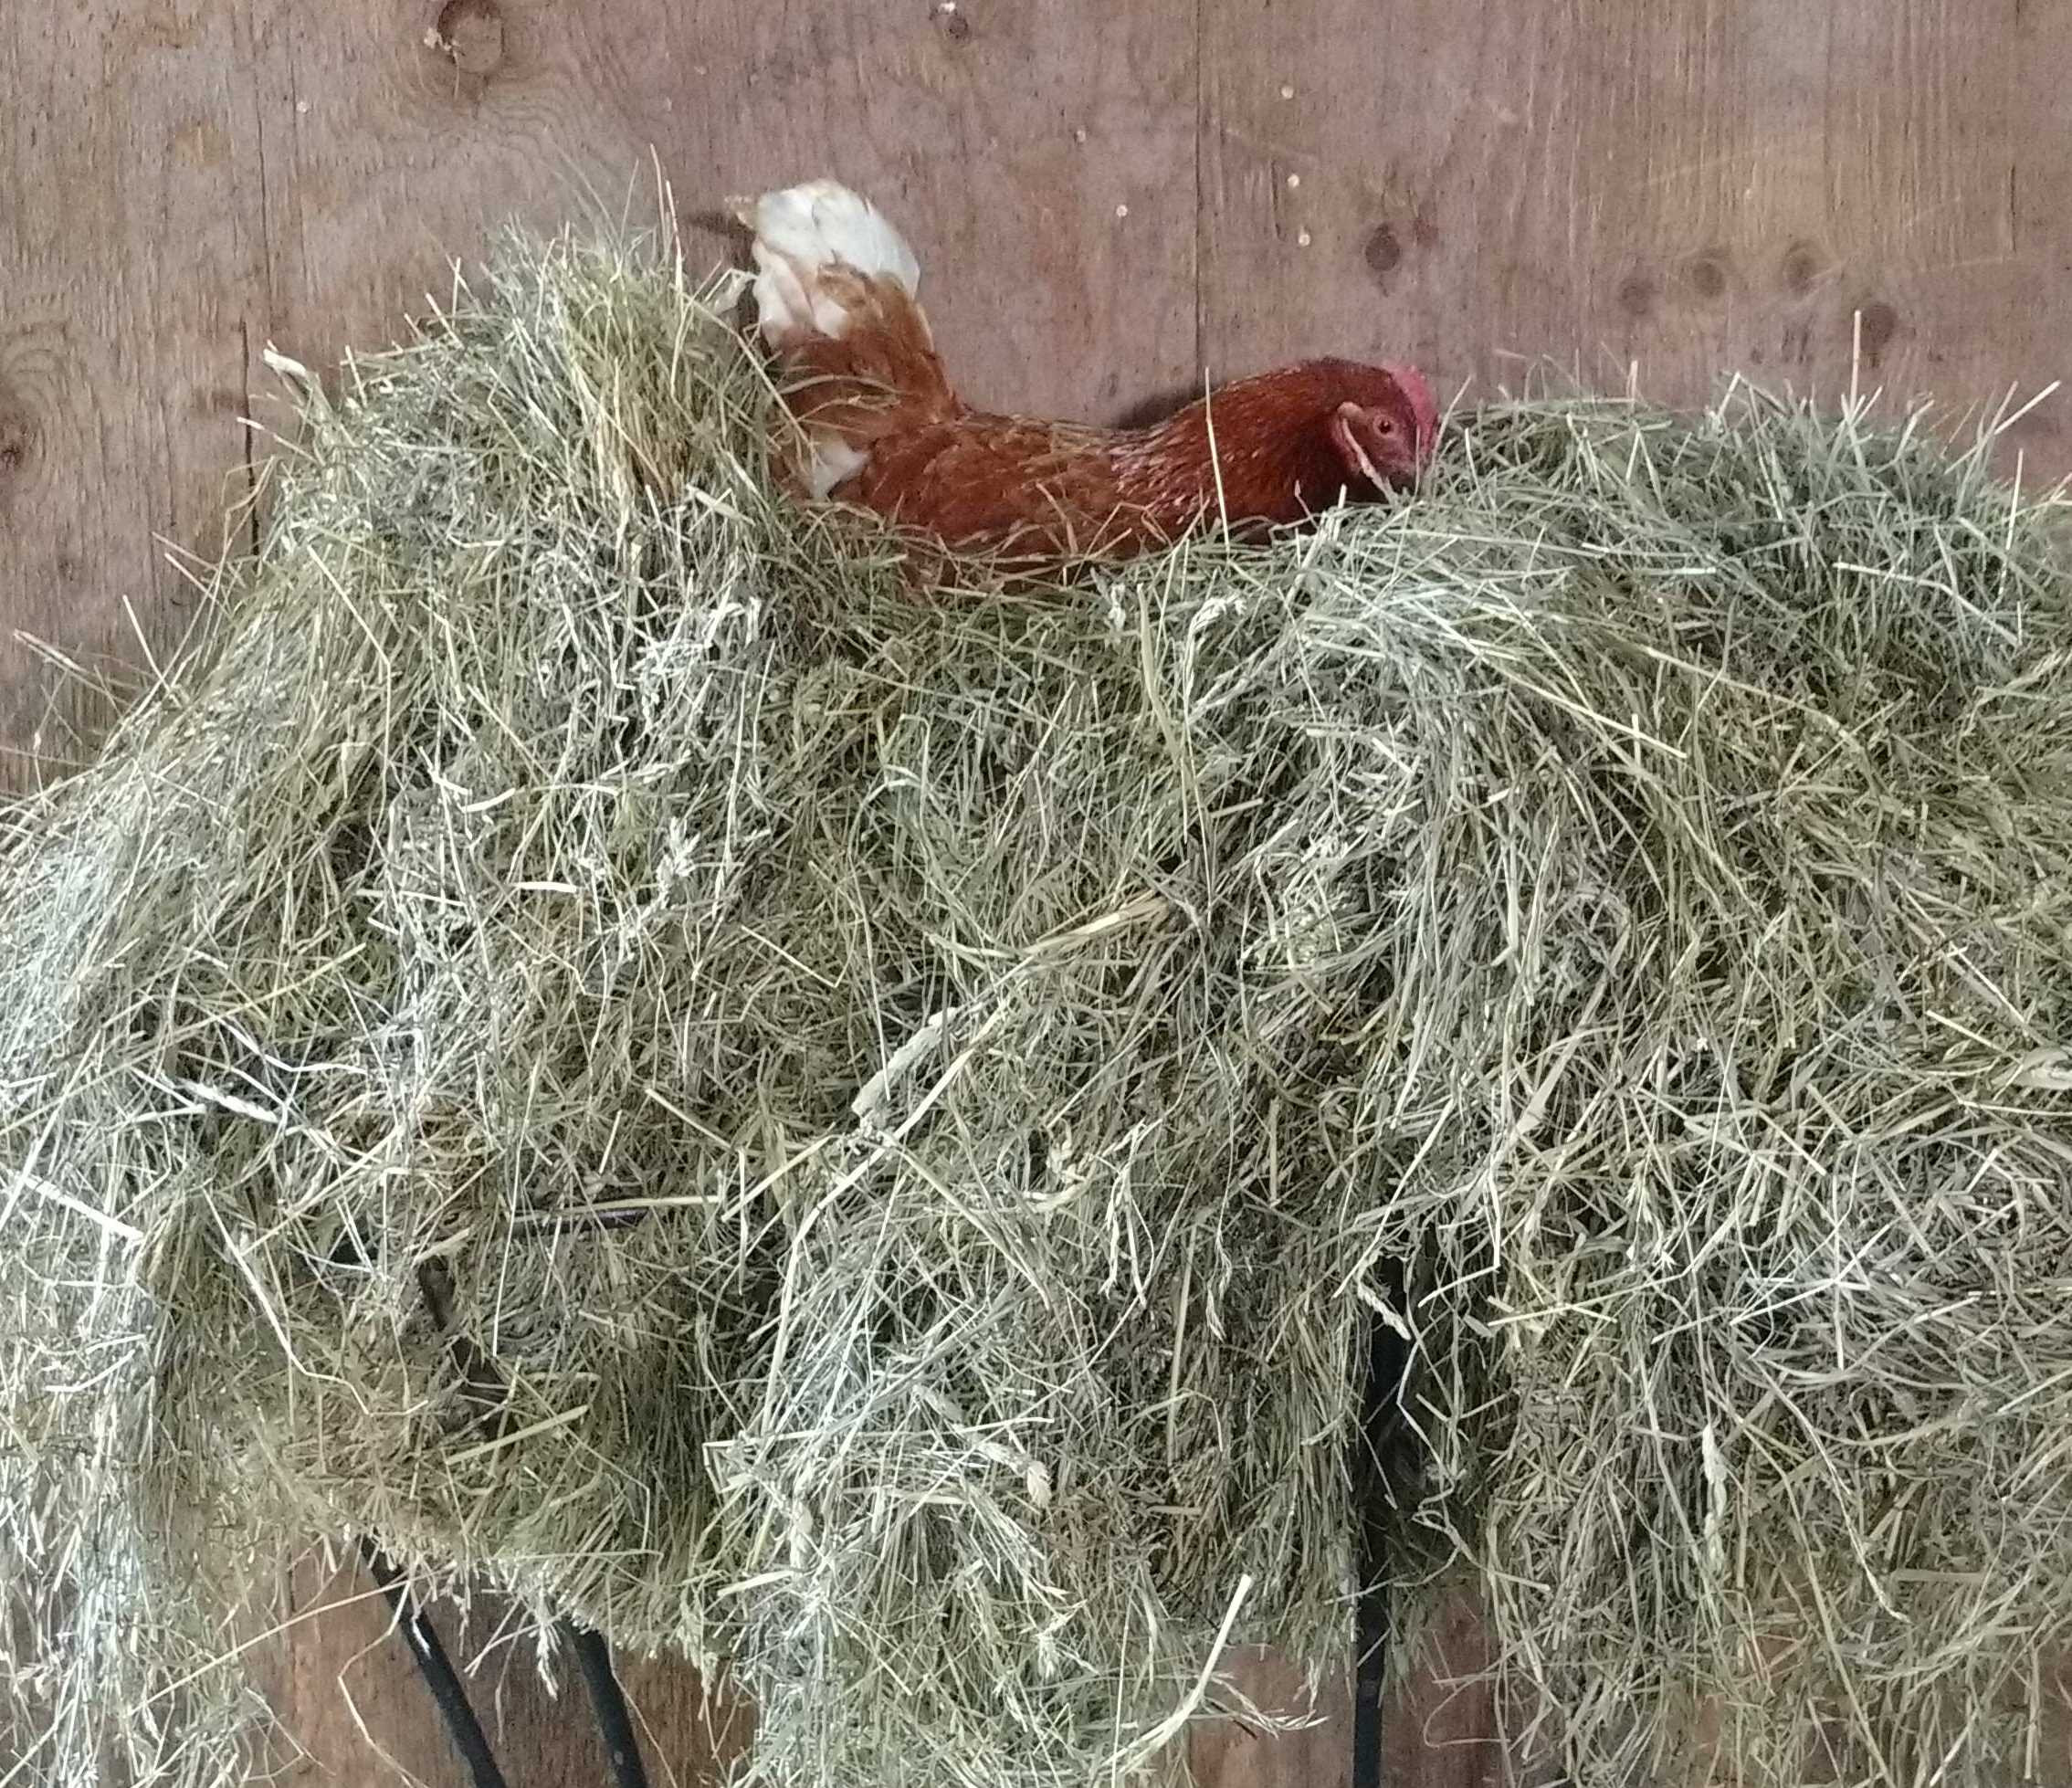 Roosting in the hay